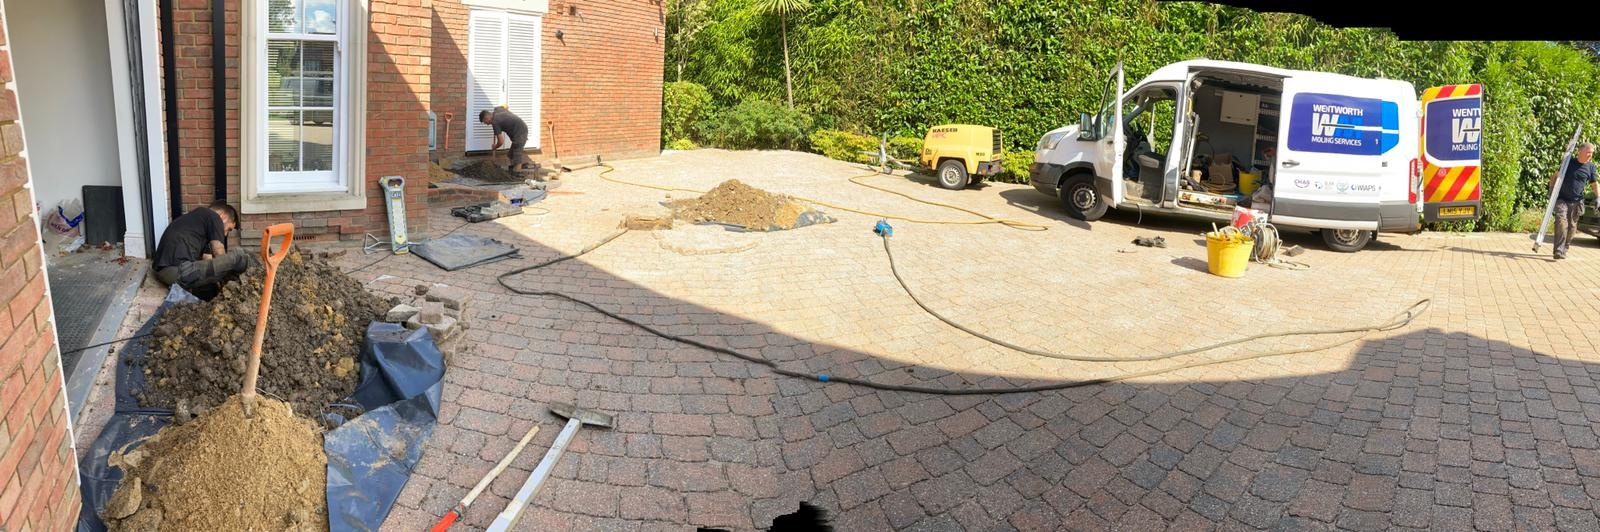 Moling Contractors Wentworth Moling Services